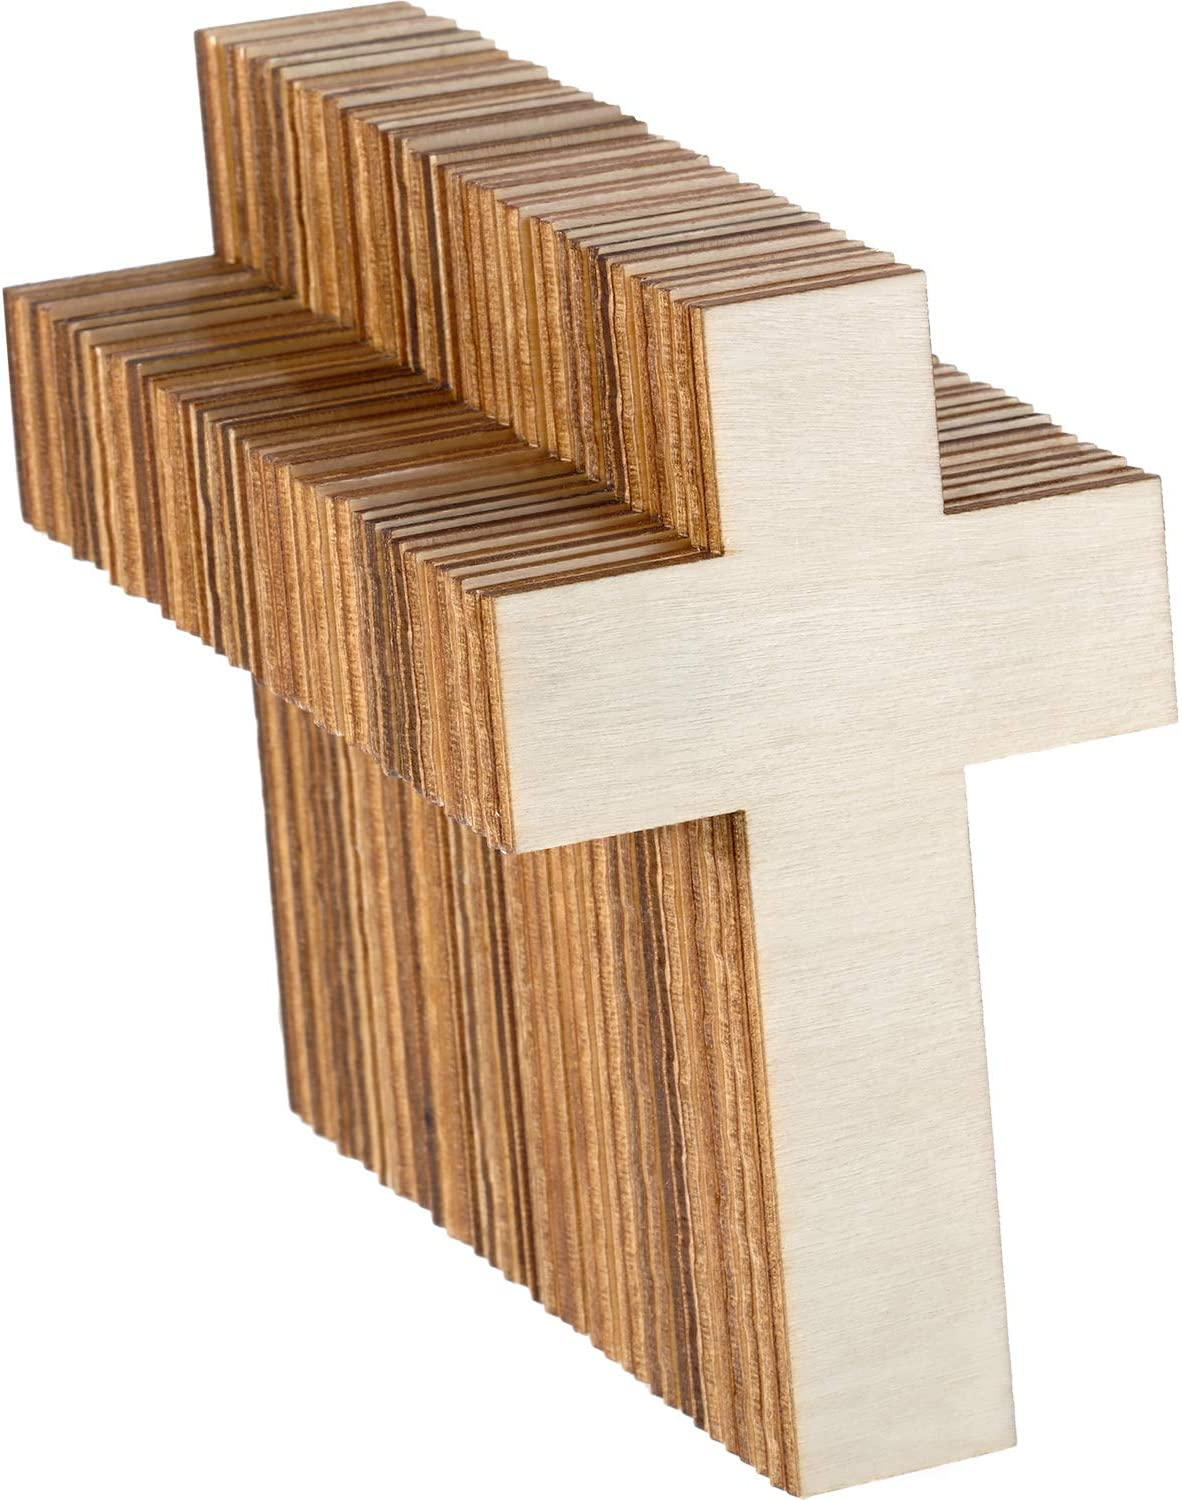 3 Unfinished Wooden Cross Shapes Cutouts DIY Crafts 4.25 Inches